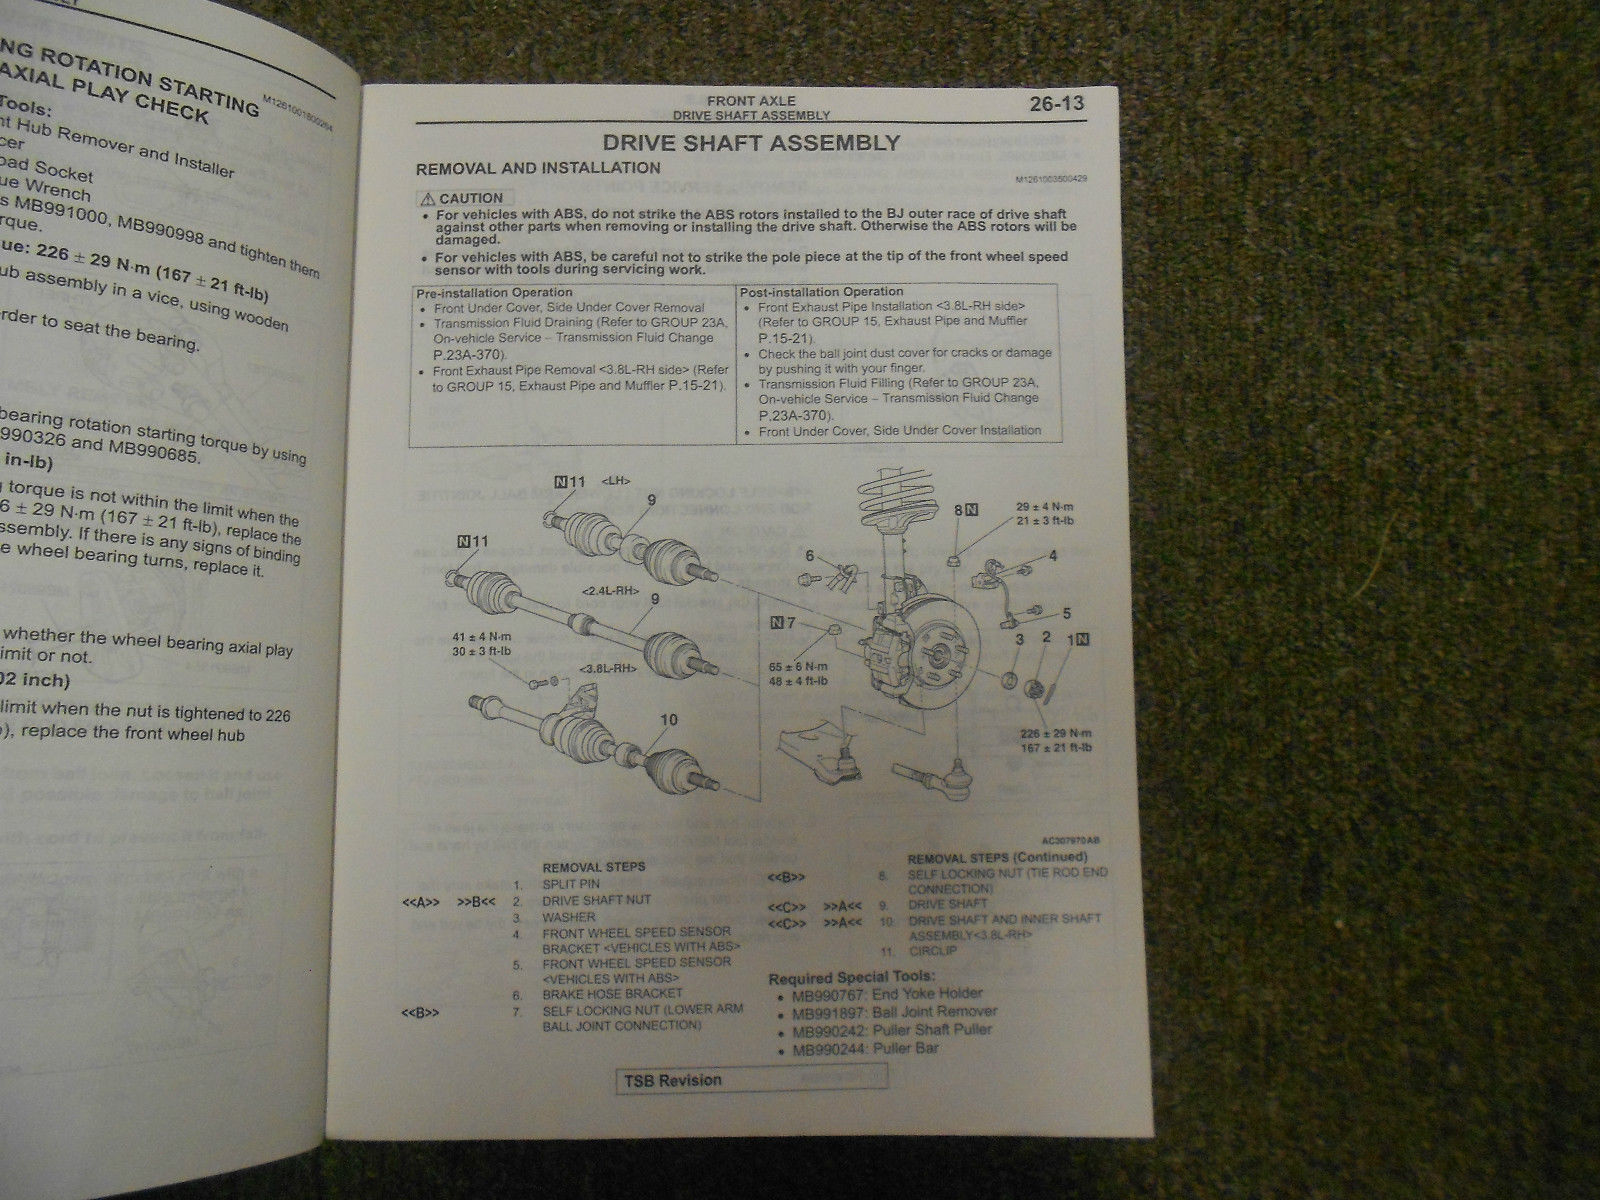 2004 MITSUBISHI Galant Service Repair Shop Manual VOL 3 OEM 04 FACTORY OEM 04 image 10